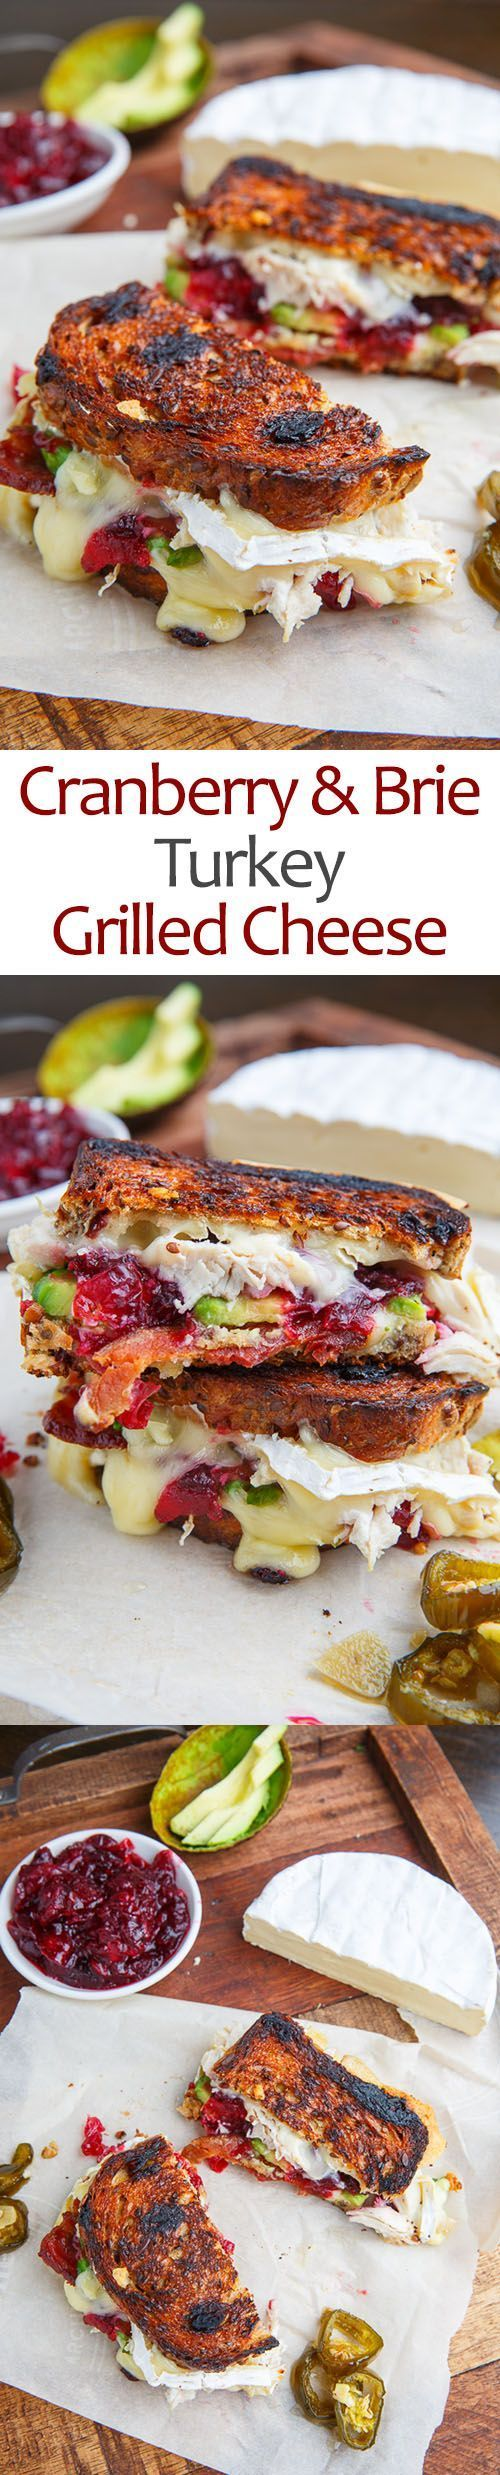 Cranberry and Brie Turkey Grilled Cheese